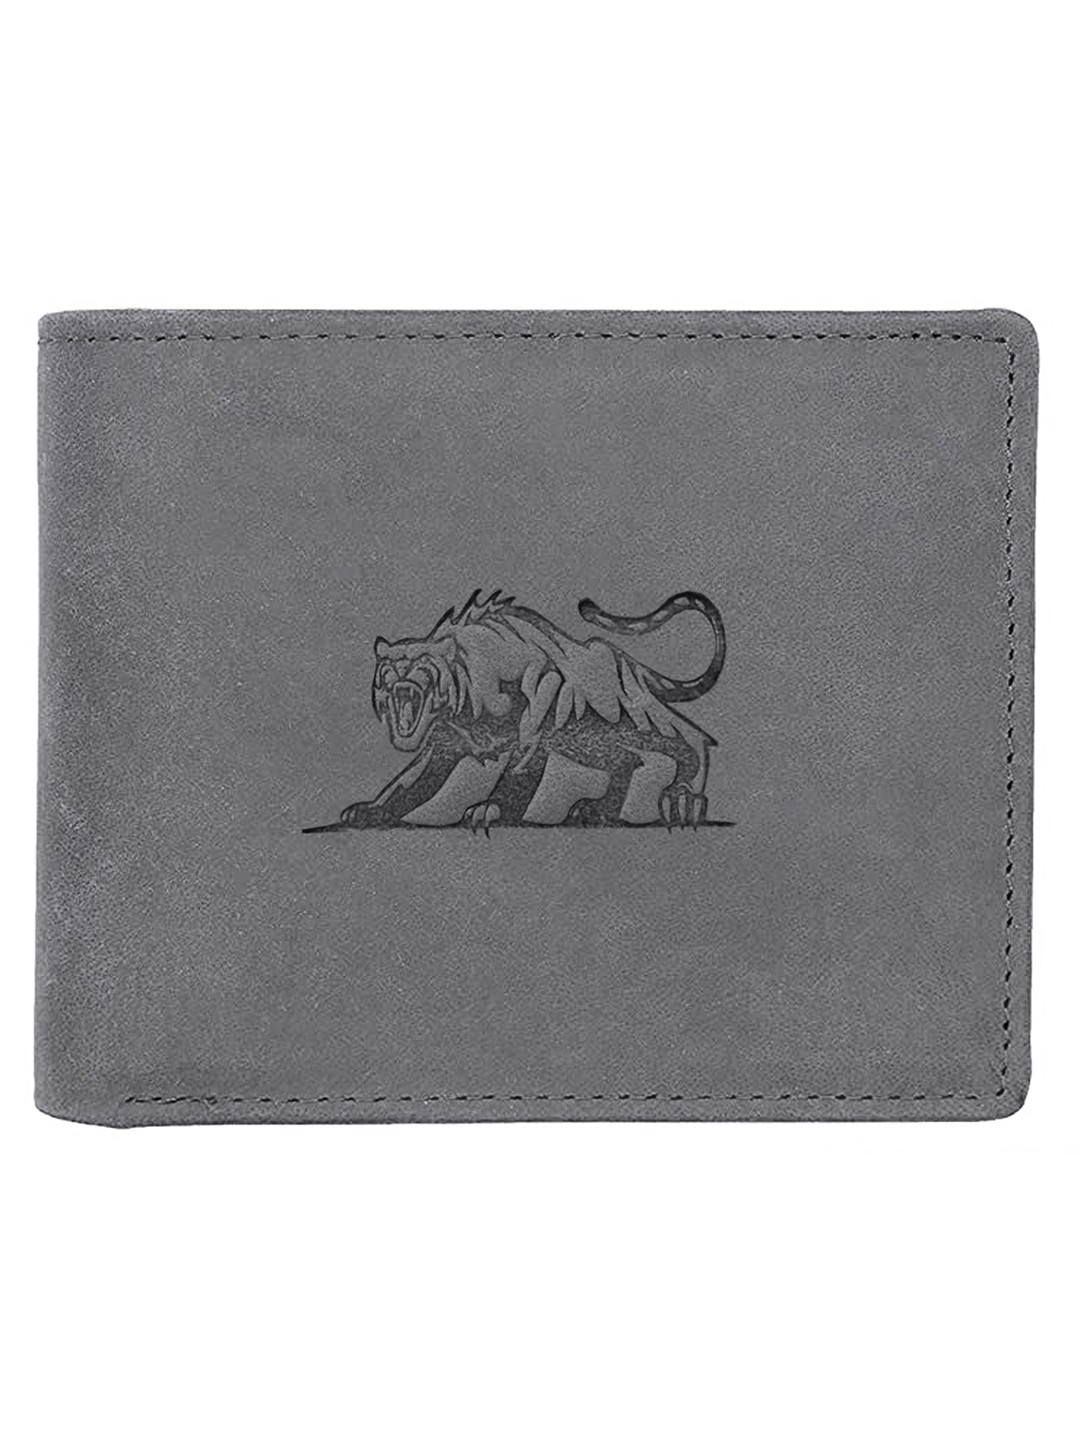 WildHorn   WildHorn RFID Protected Genuine High Quality Leather Grey Wallet for Men